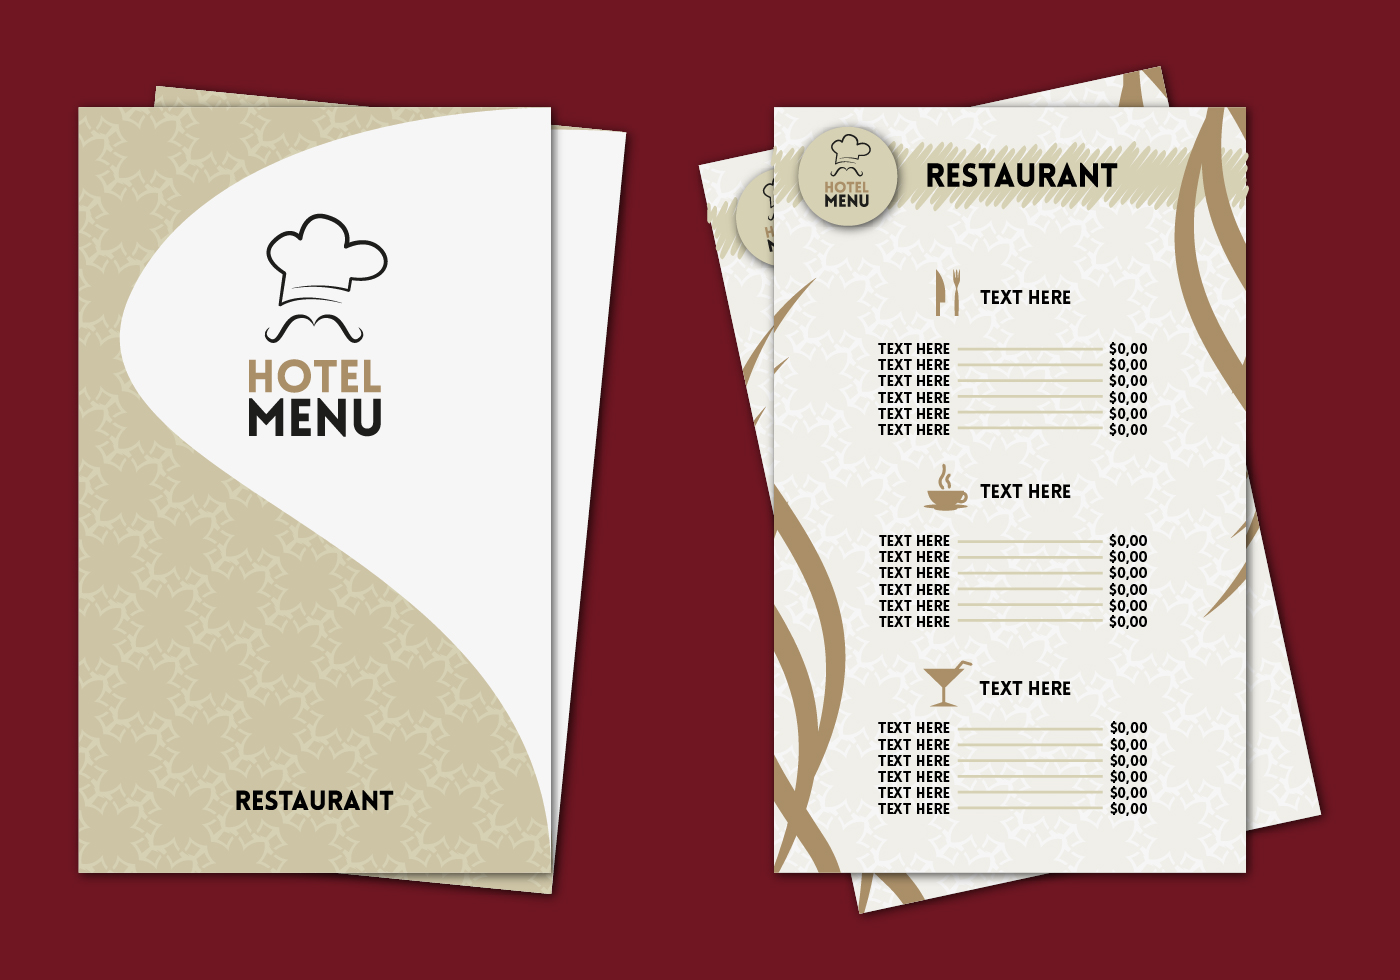 hotel menu professional template vector download free vector art